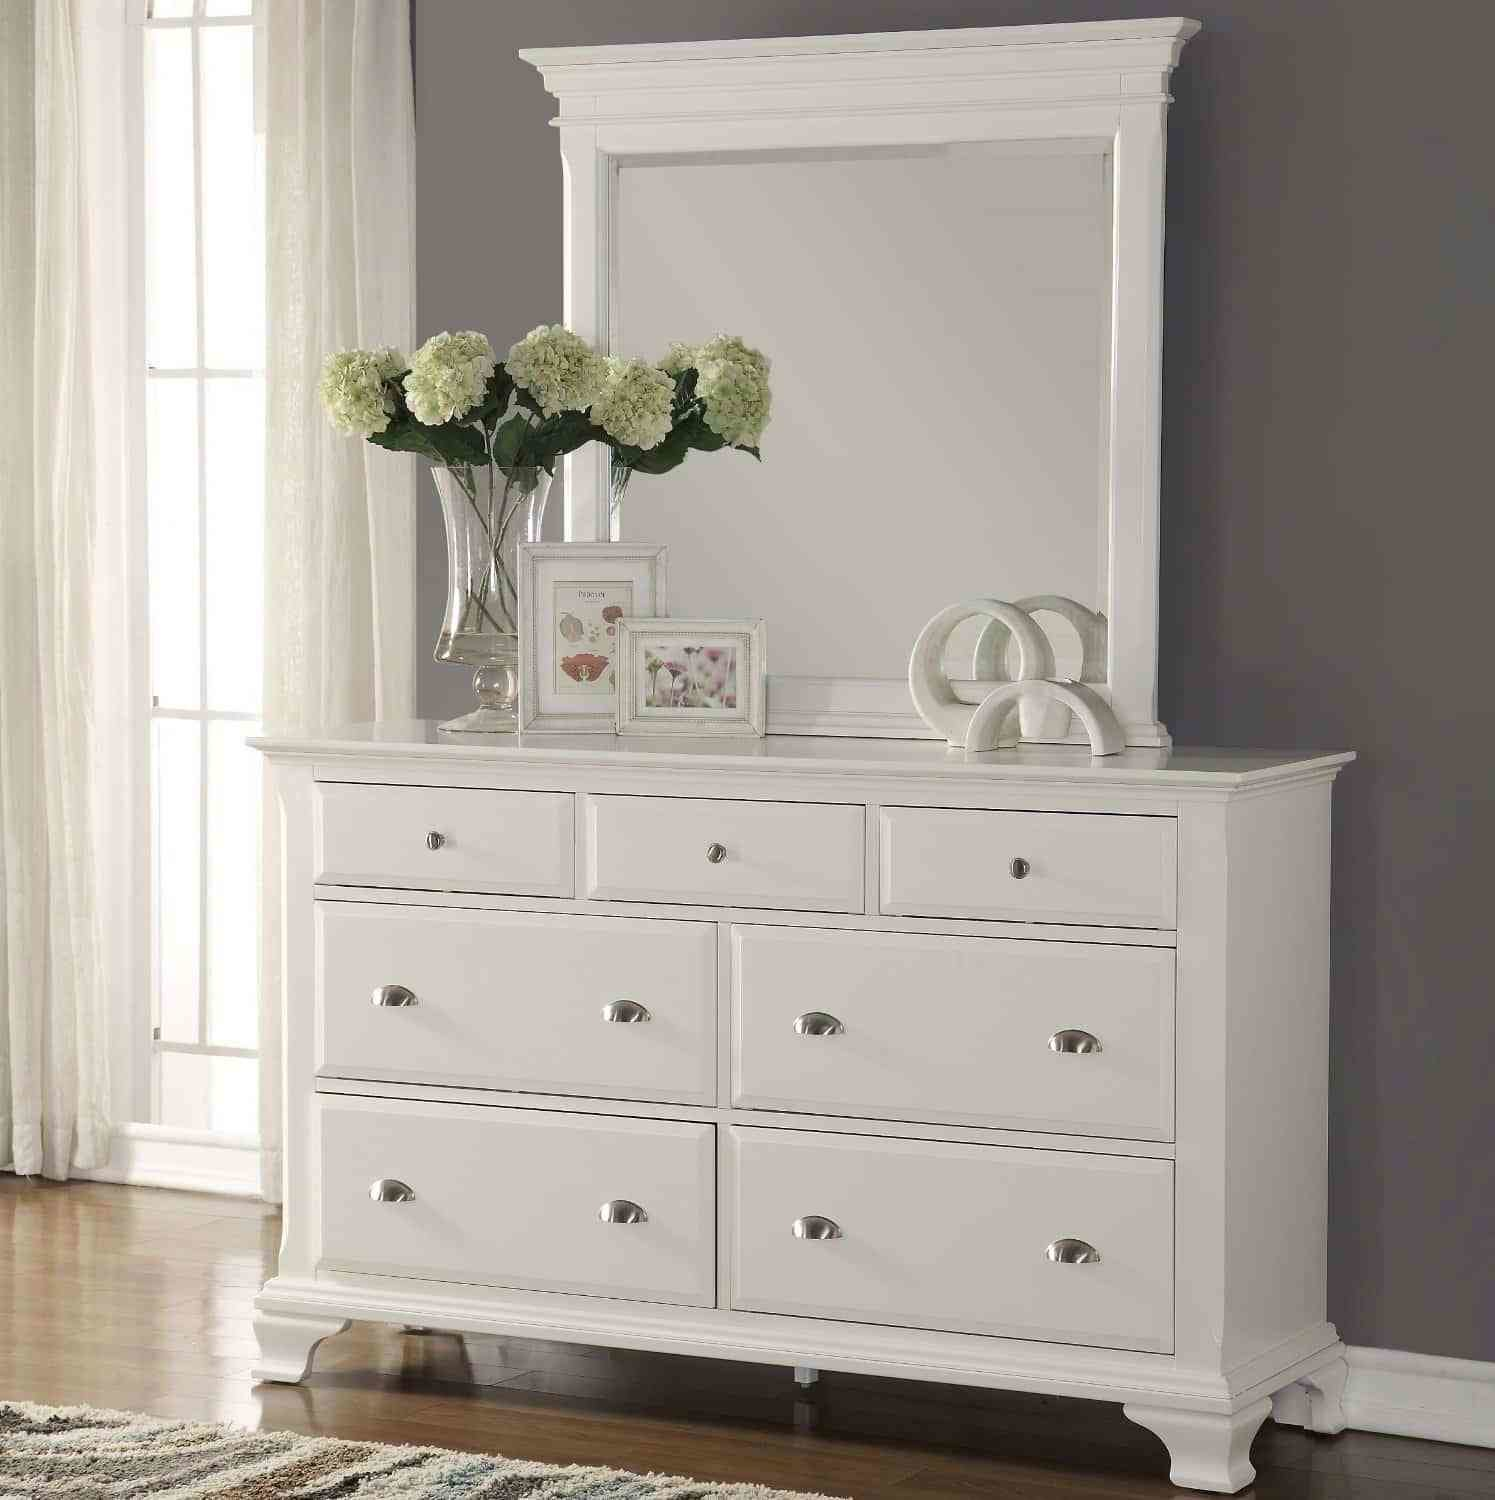 Best White Bedroom Dressers White Dressers With Pictures Original 1024 x 768